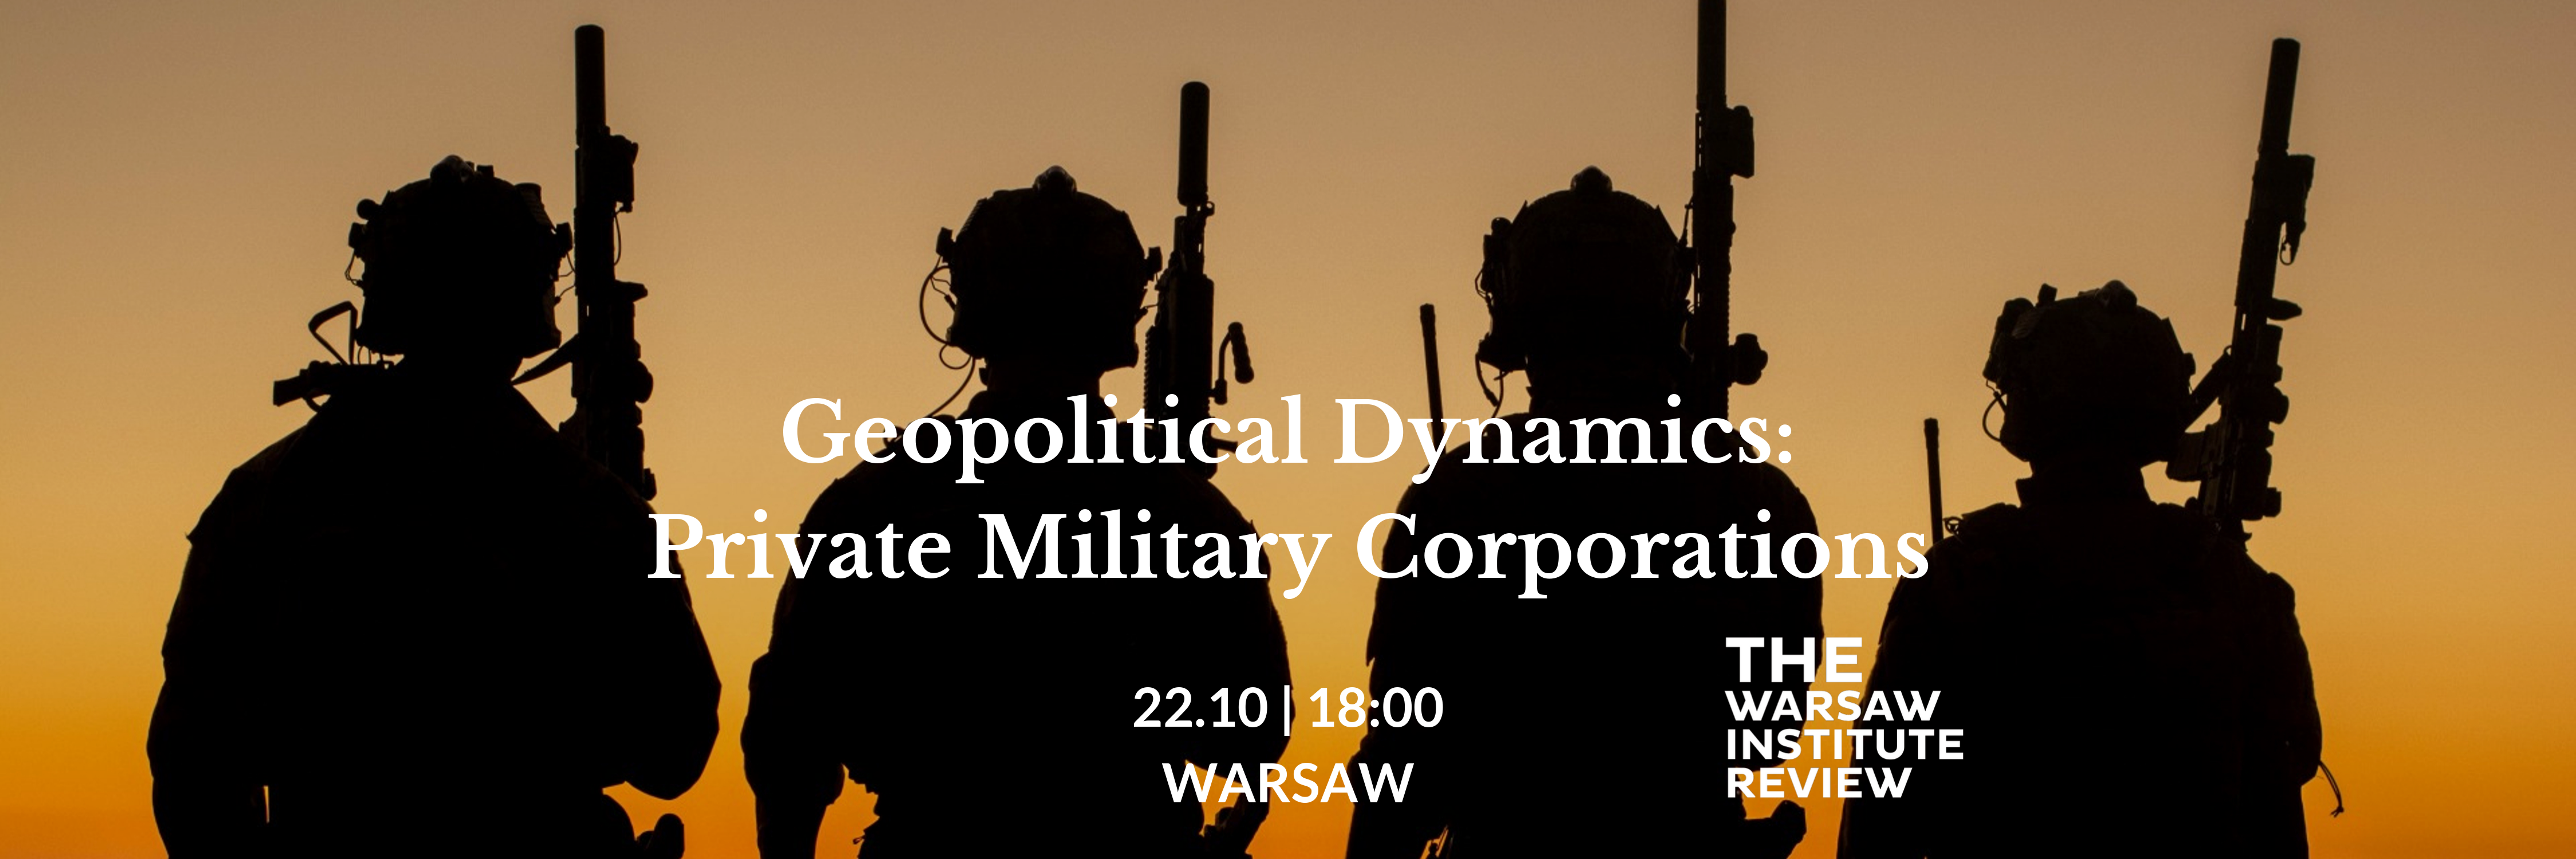 Geopolitical Dynamics: Private Military Corporations – expert debate of the Warsaw Institute Review coming soon!